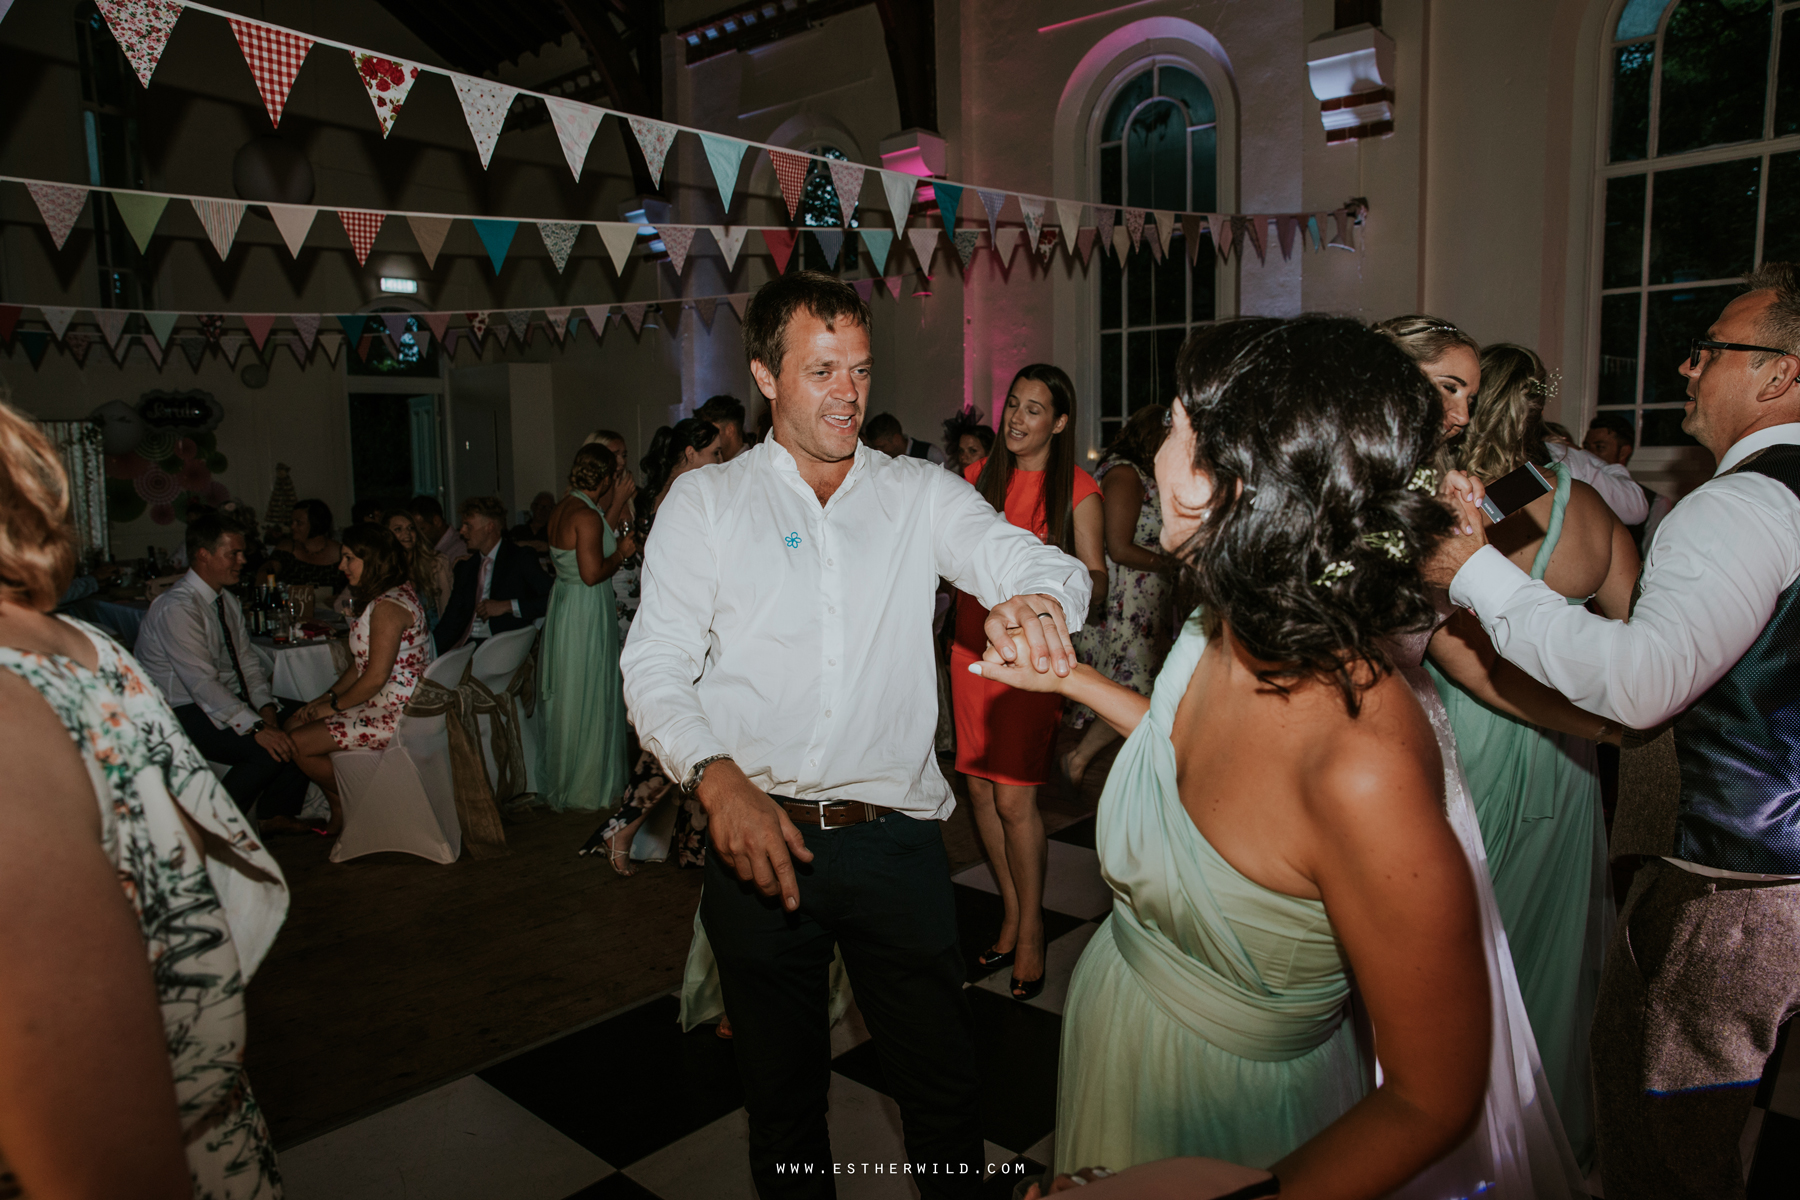 Swaffham_Wedding_Castle_Acre_Norfolk_Esther_Wild_Photographer_Wedding_Photography_3R8A2359.jpg